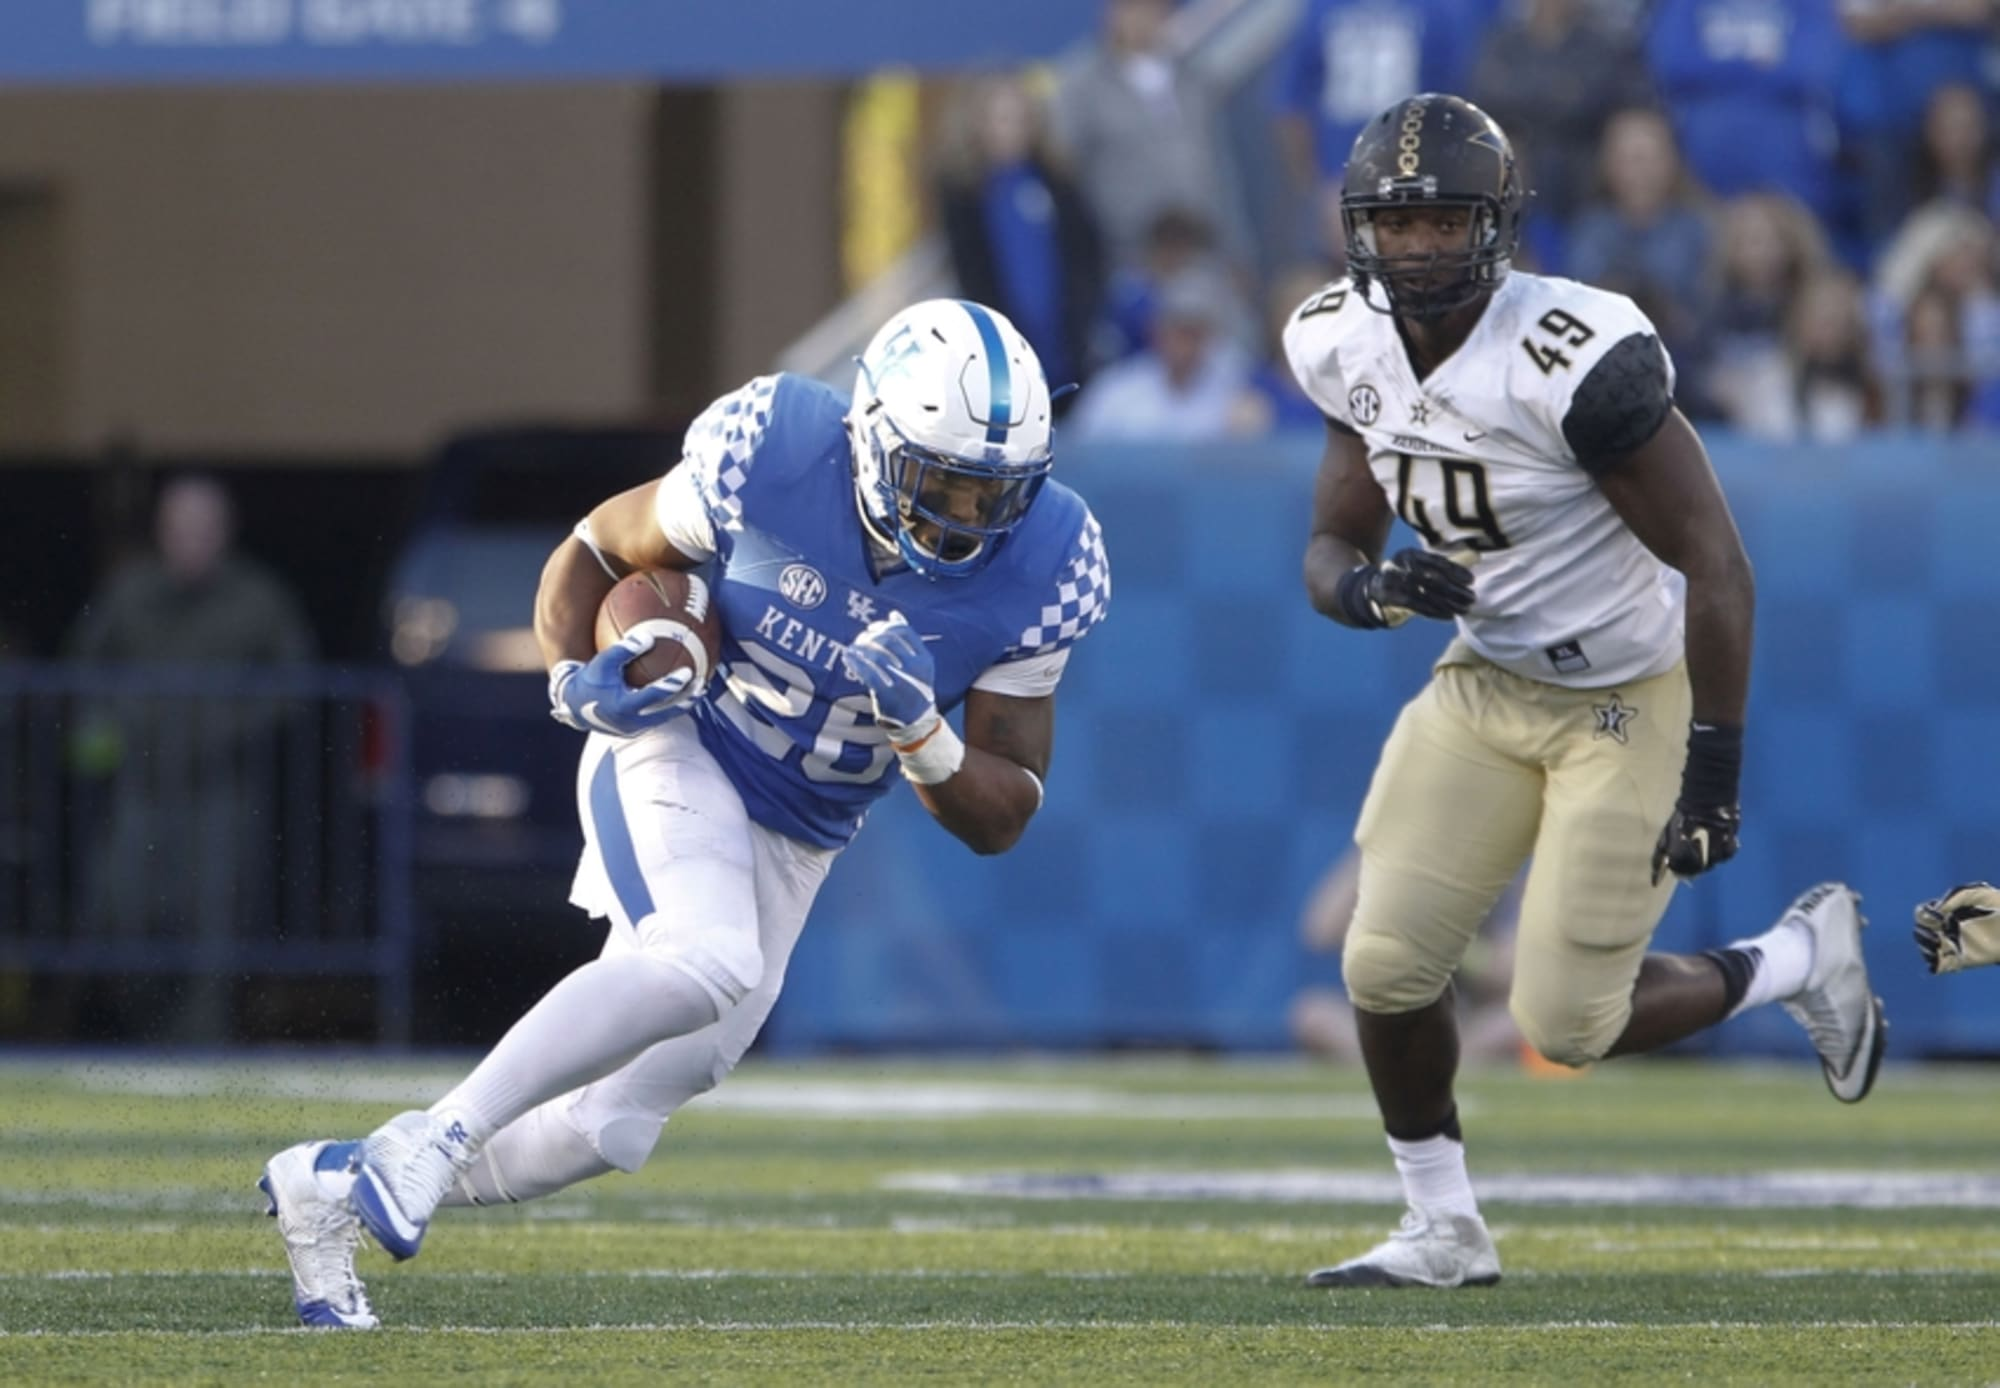 Kentucky Football: Benny Snell Jr. Is The Future At UK